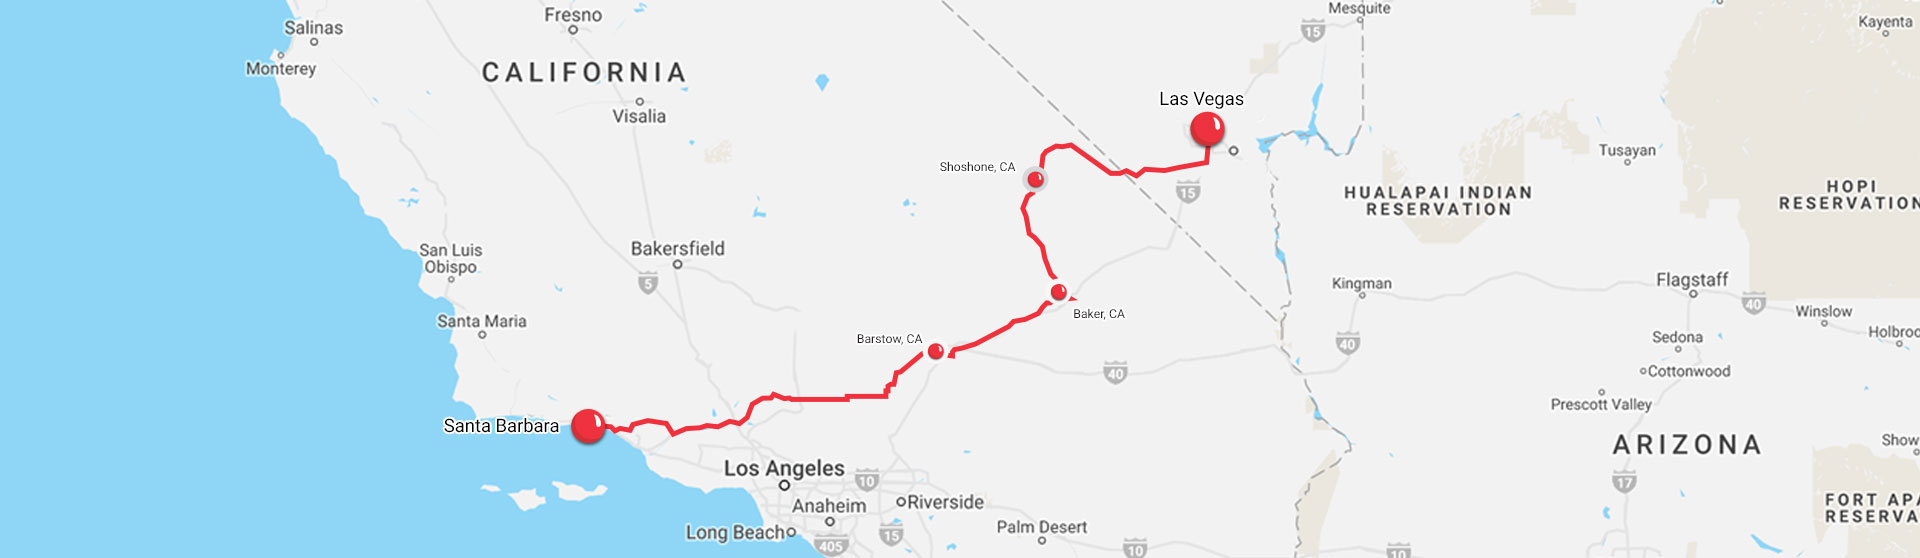 Rides Red Nose Day Best Of Barstow California Map - Touran - Baker California Map